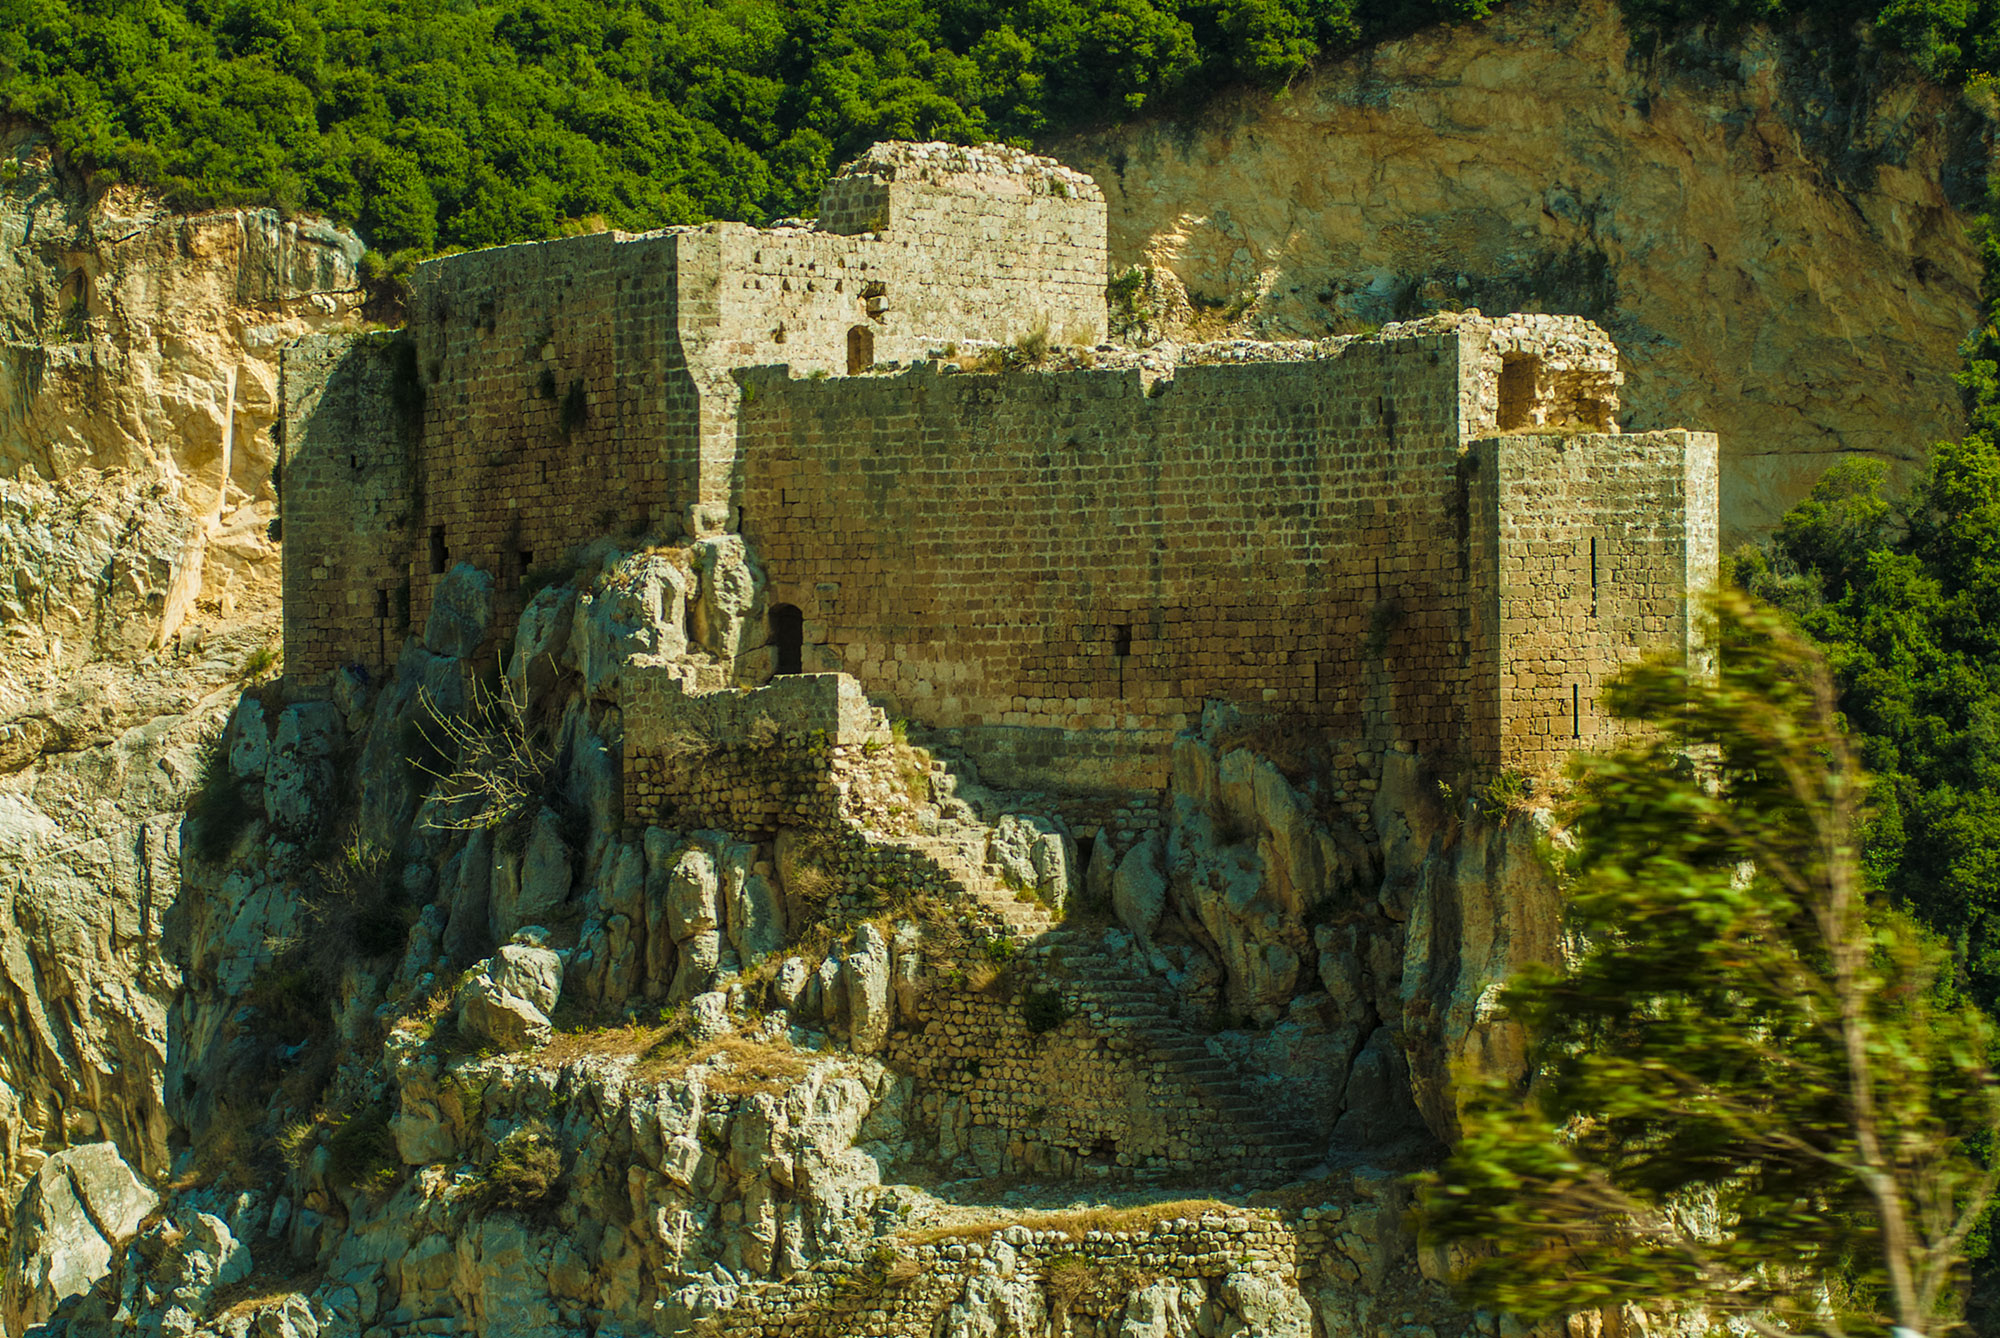 The Musailaha crusaders castle, 12th century.